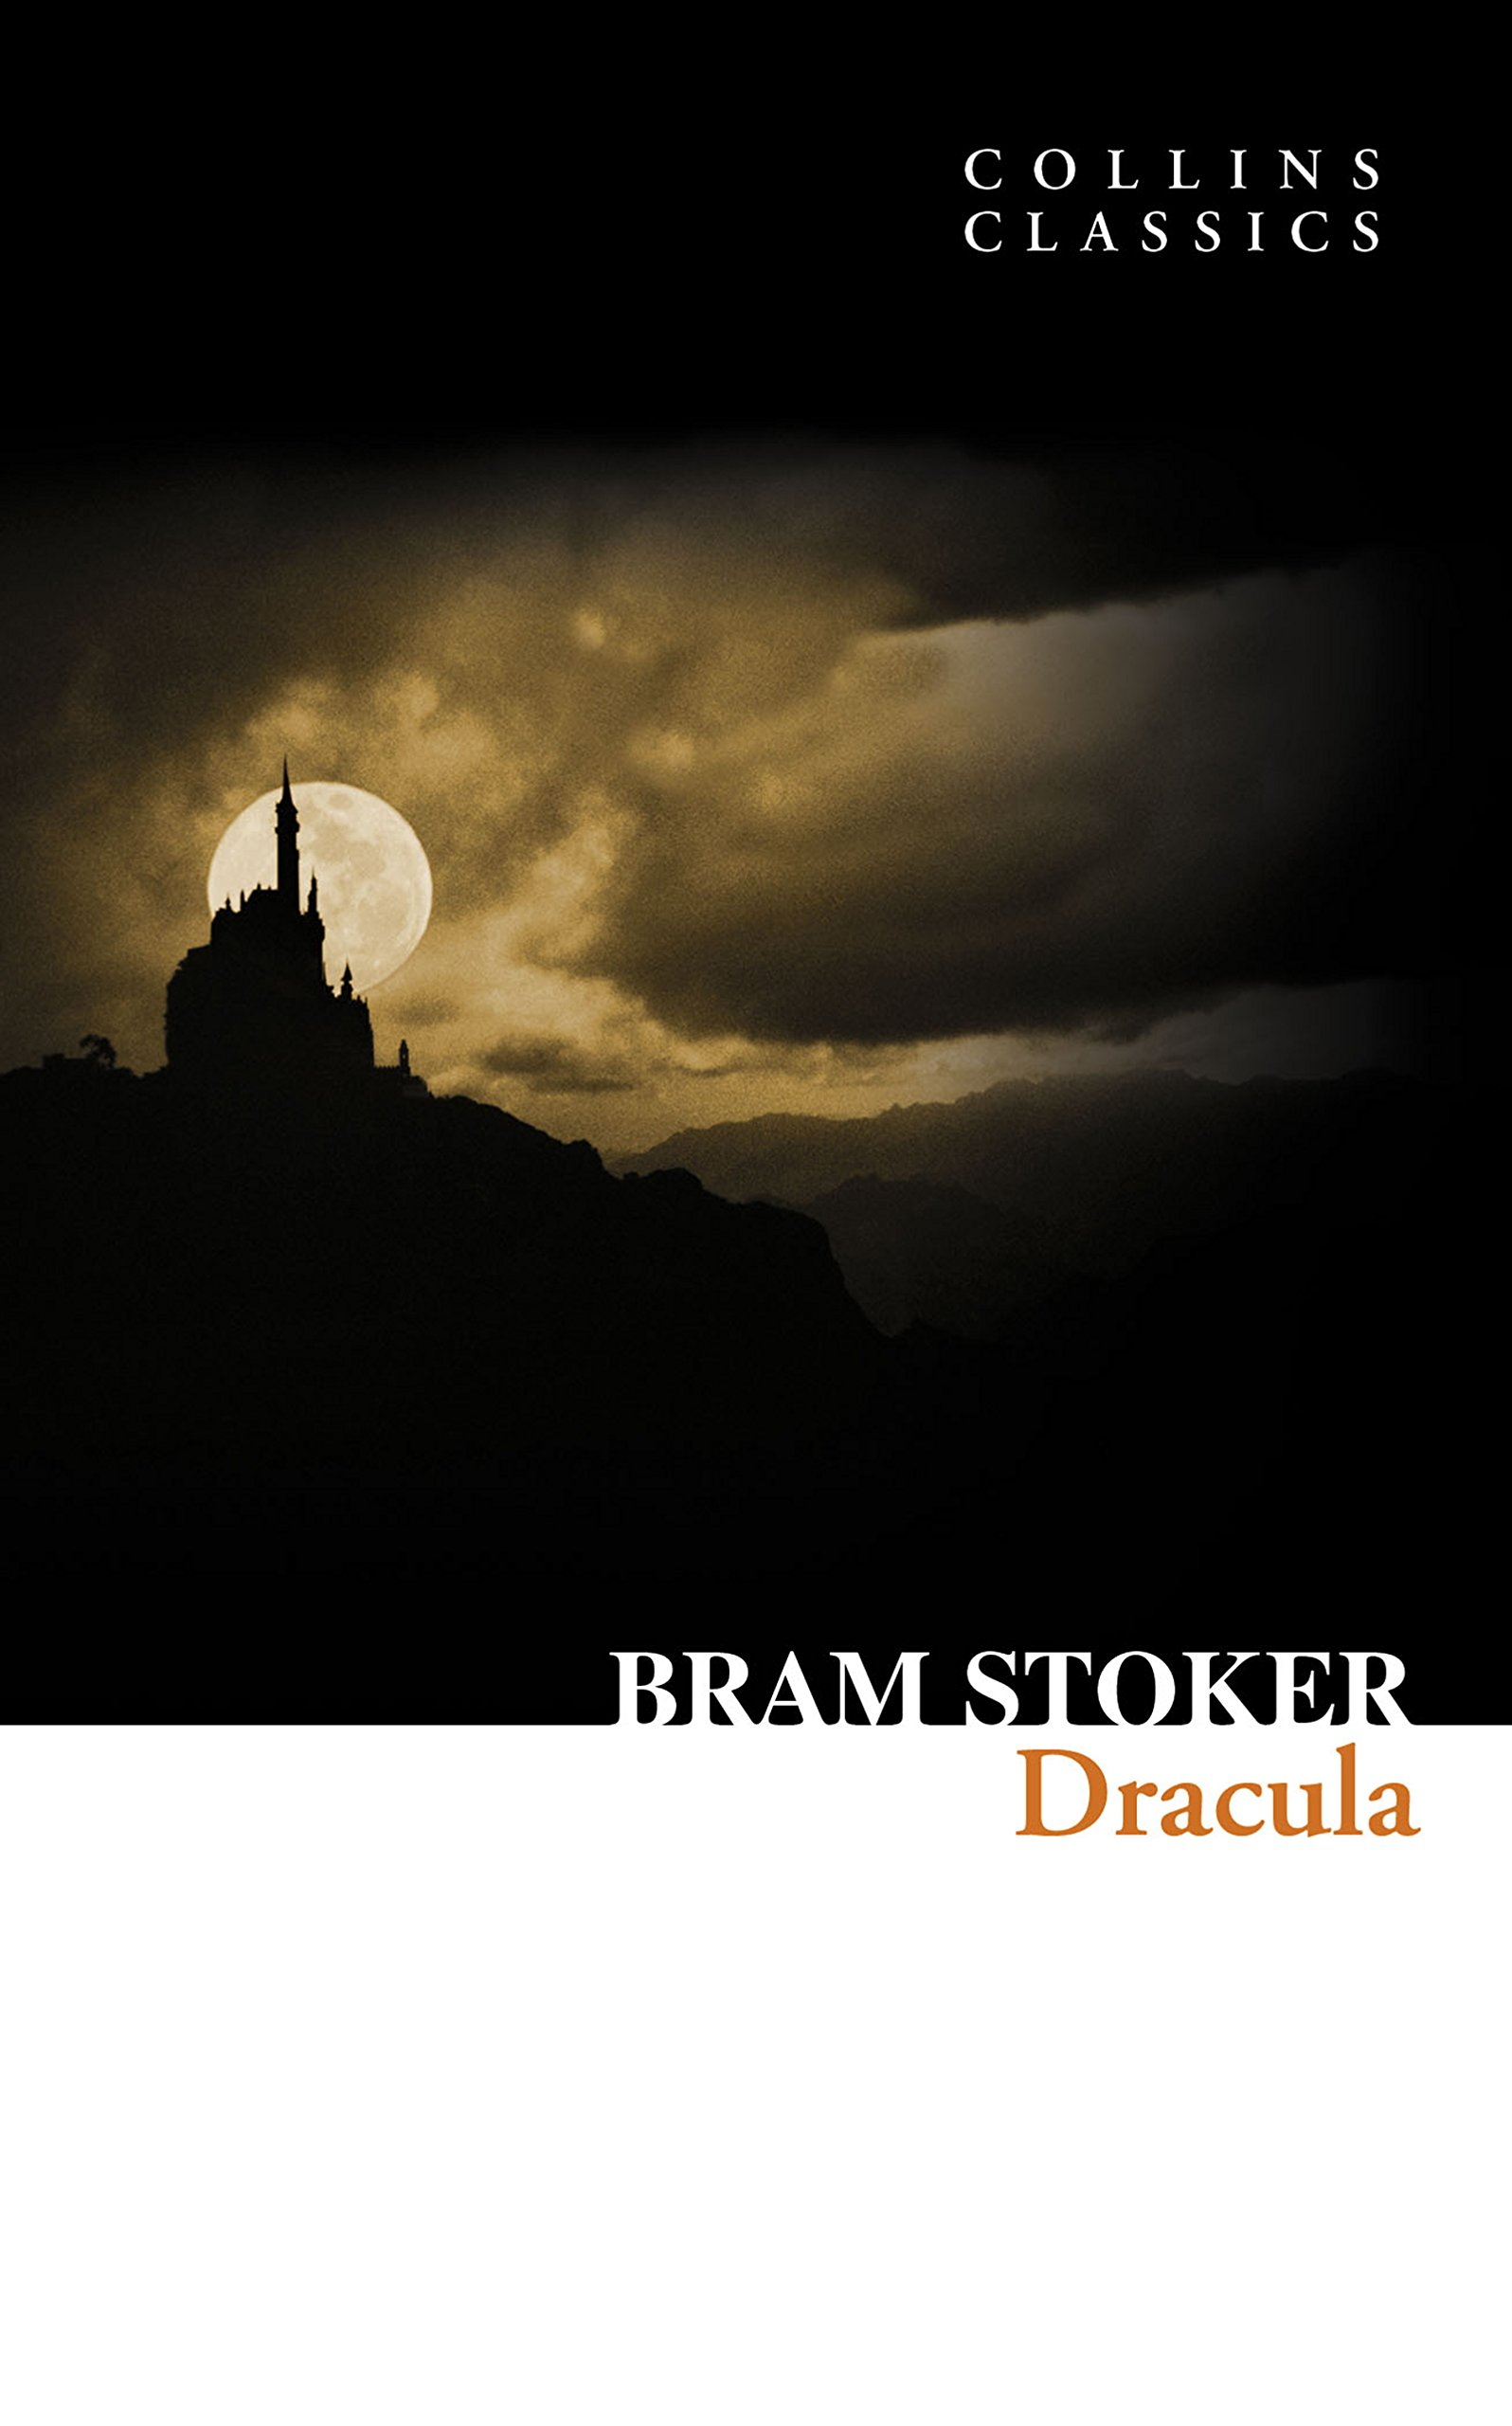 Dracula Collins Classics Bram Stoker product image